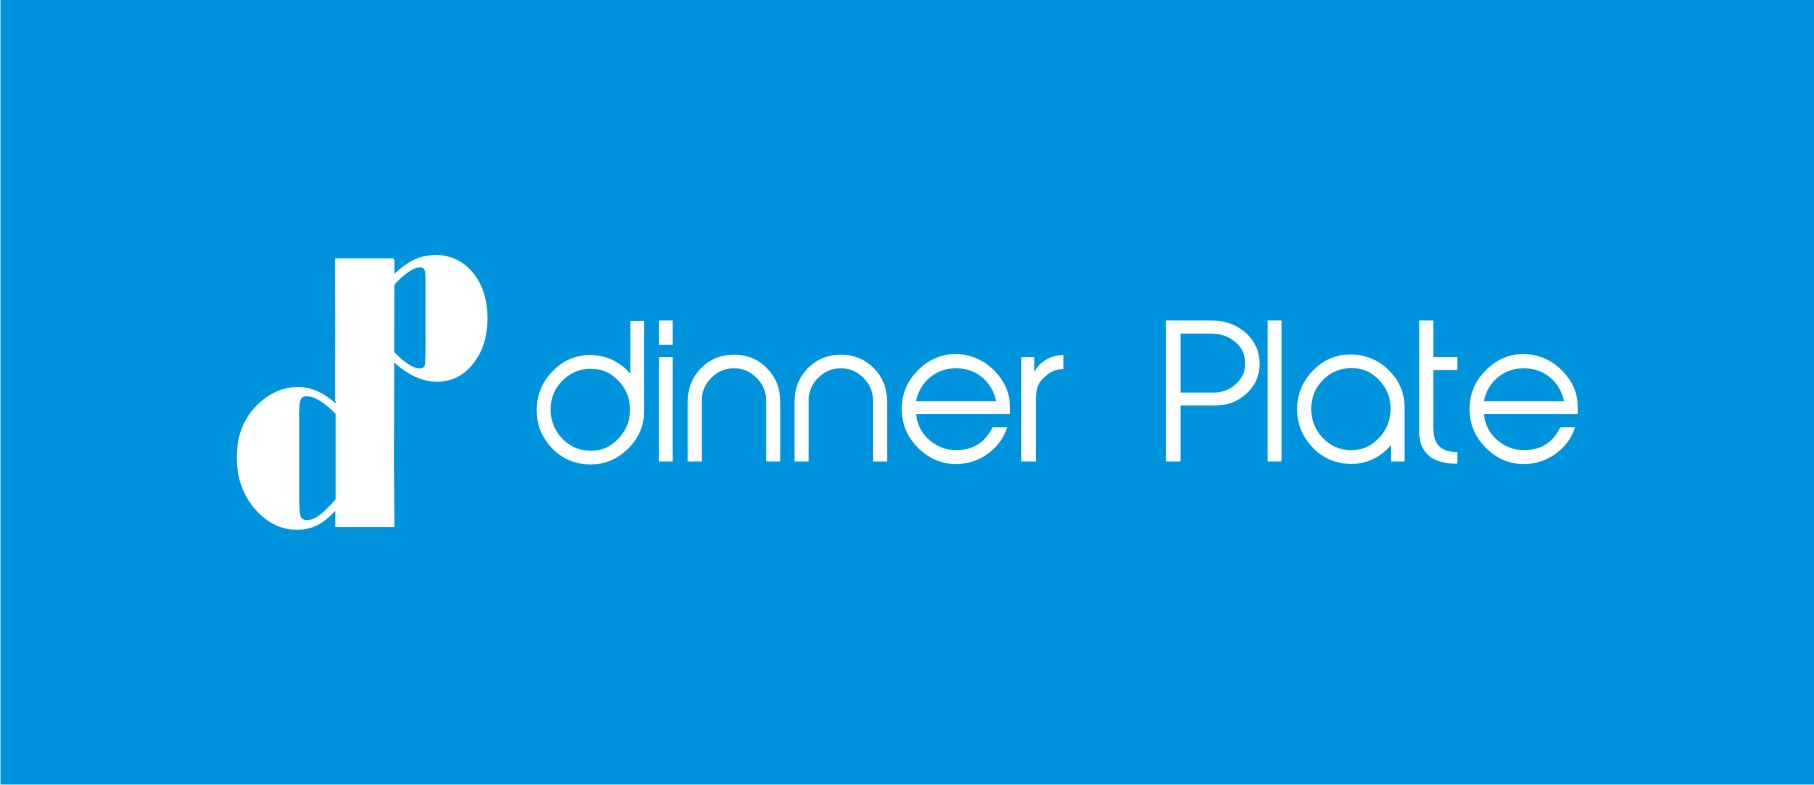 Logo Design by Shailender Kumar - Entry No. 60 in the Logo Design Contest Imaginative Logo Design for Dinner Plate.